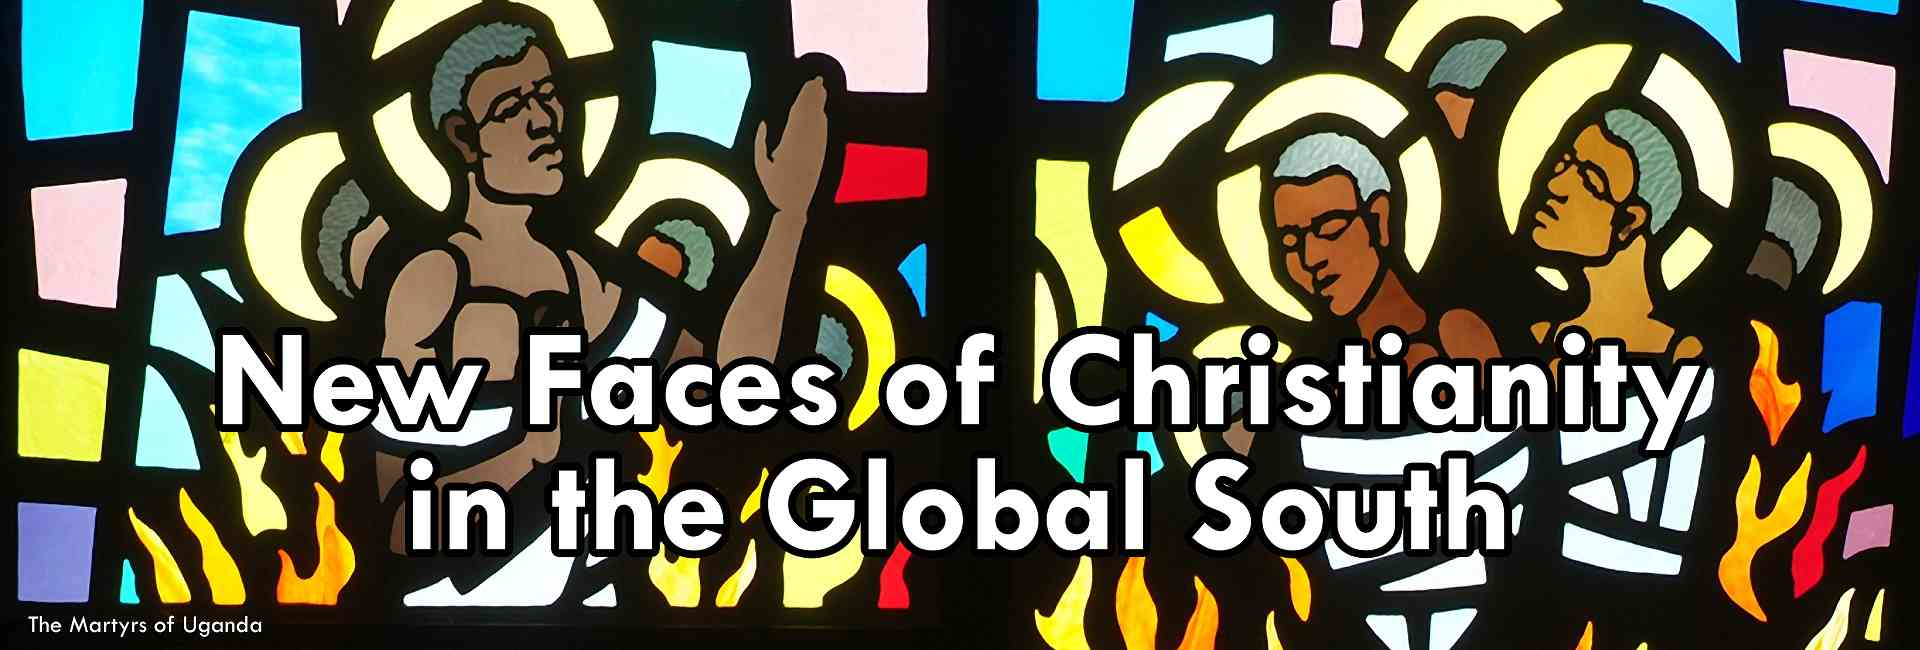 New Faces of Christianity in the Global South